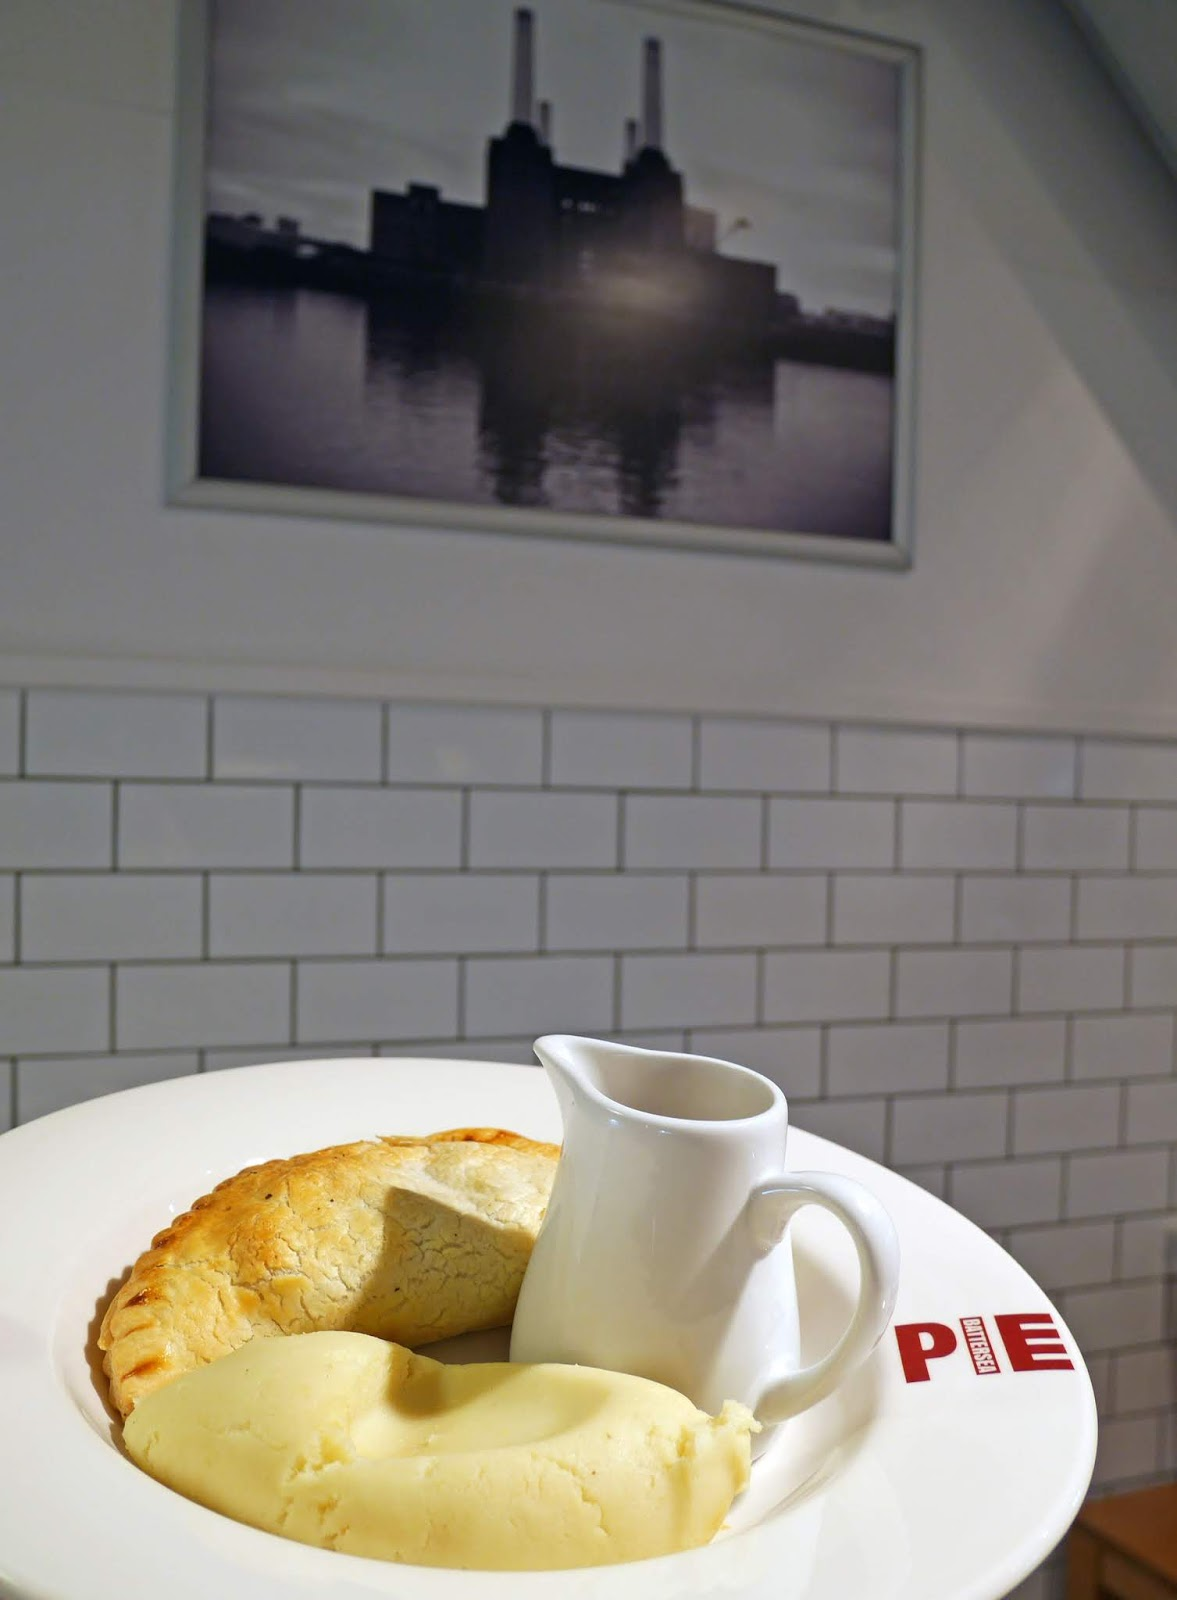 Vegetarian pasty with a side of mash potato at the Battersea Pie Station restaurant in Covent Garden, London